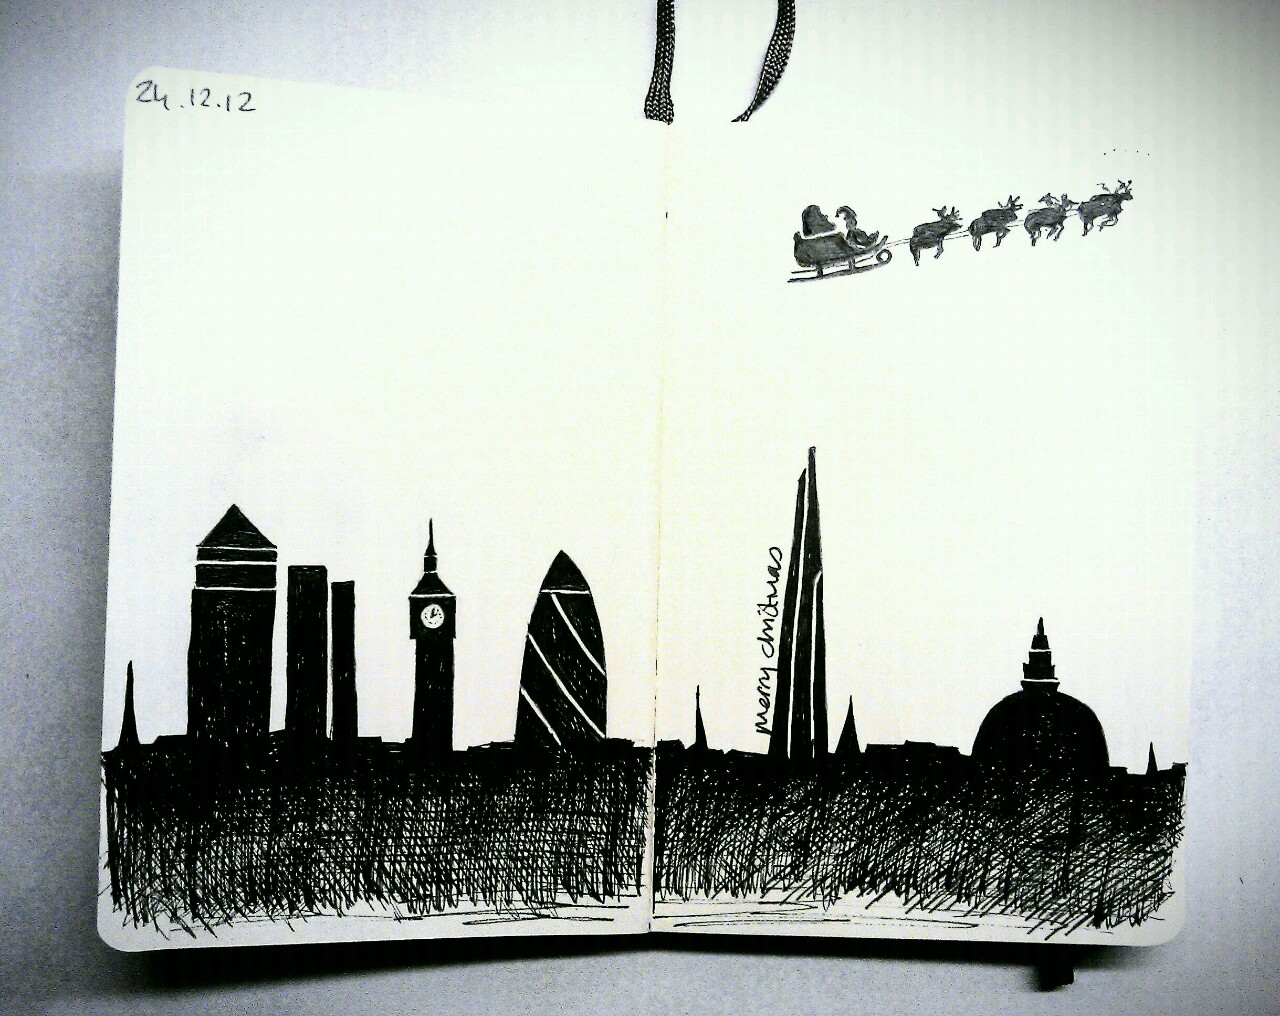 365 drawings later … day 328 … merry christmas